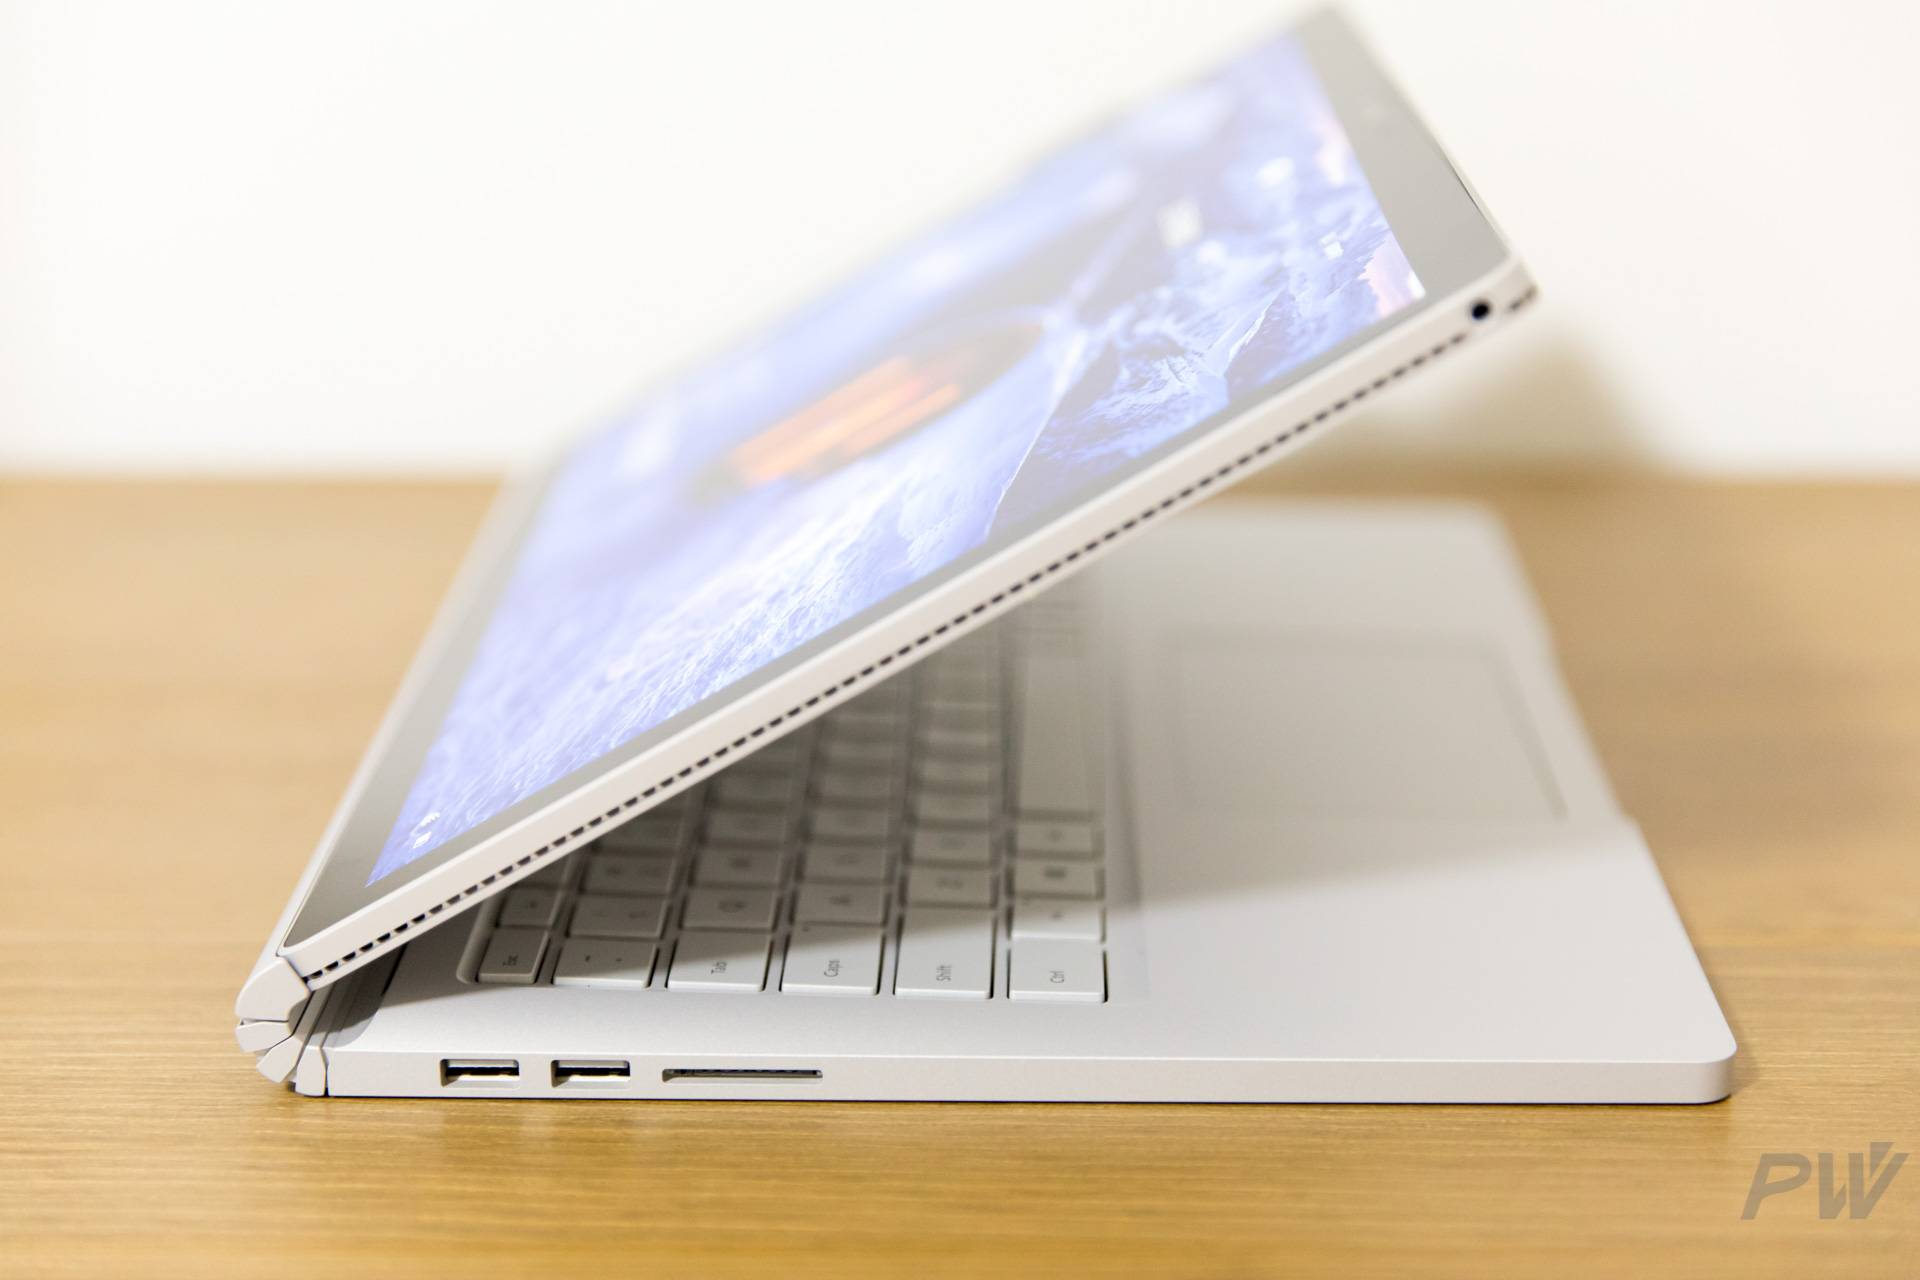 Microsoft Surface Book 2017 Photo by Hao Ying-32